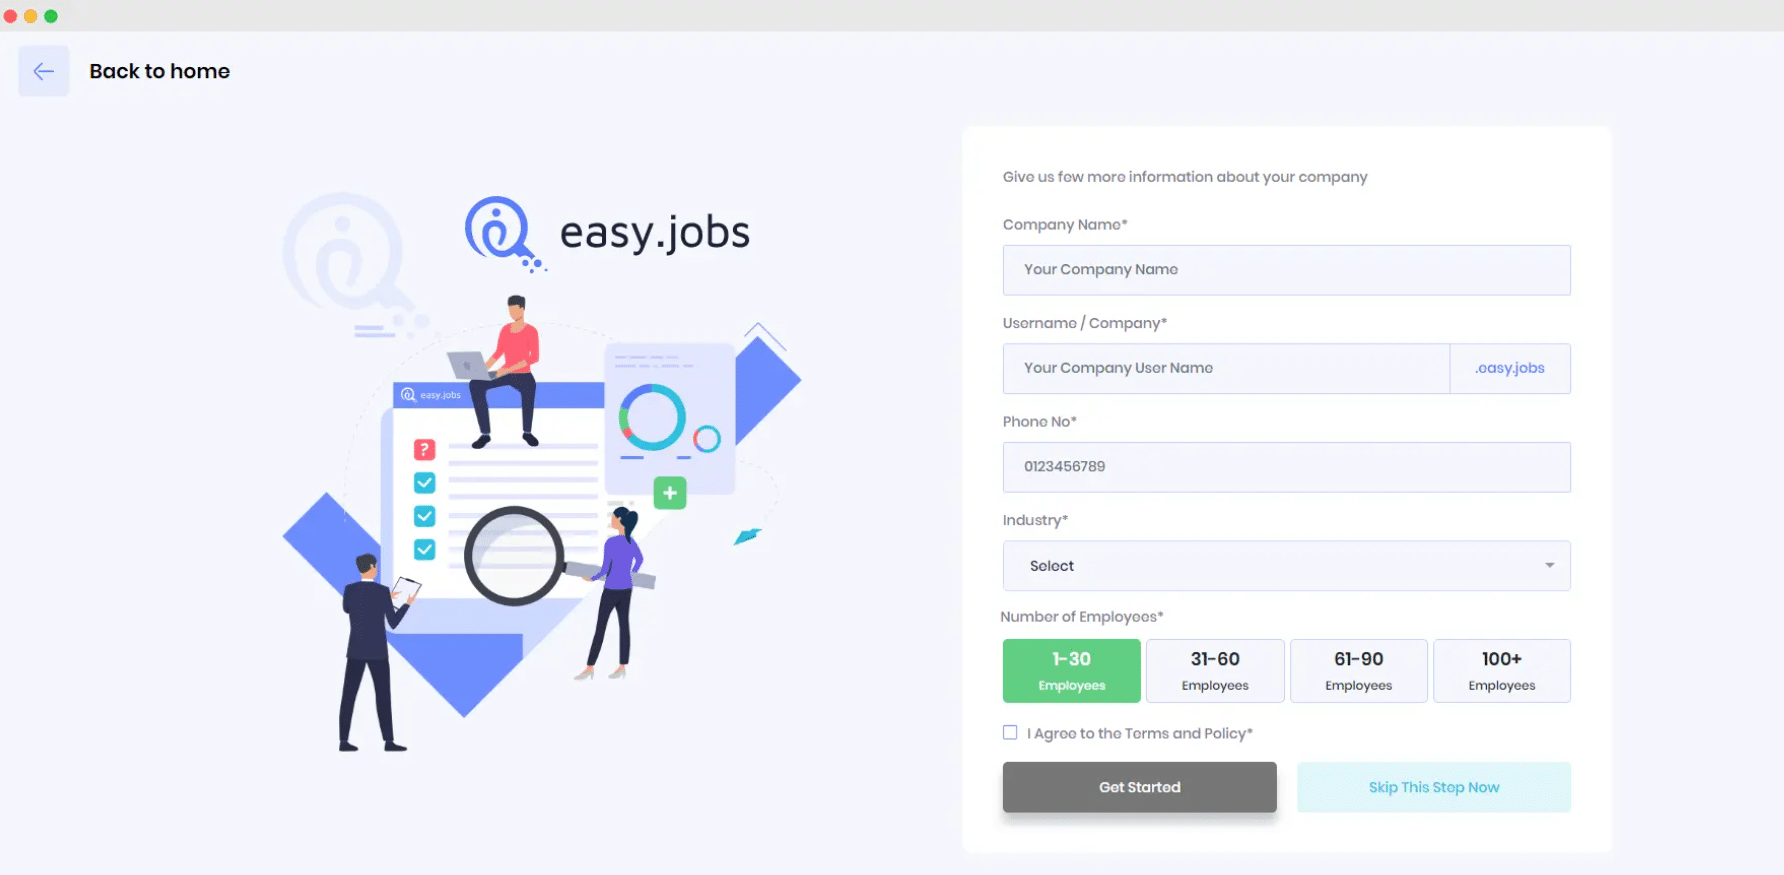 easy.jobs prijzen